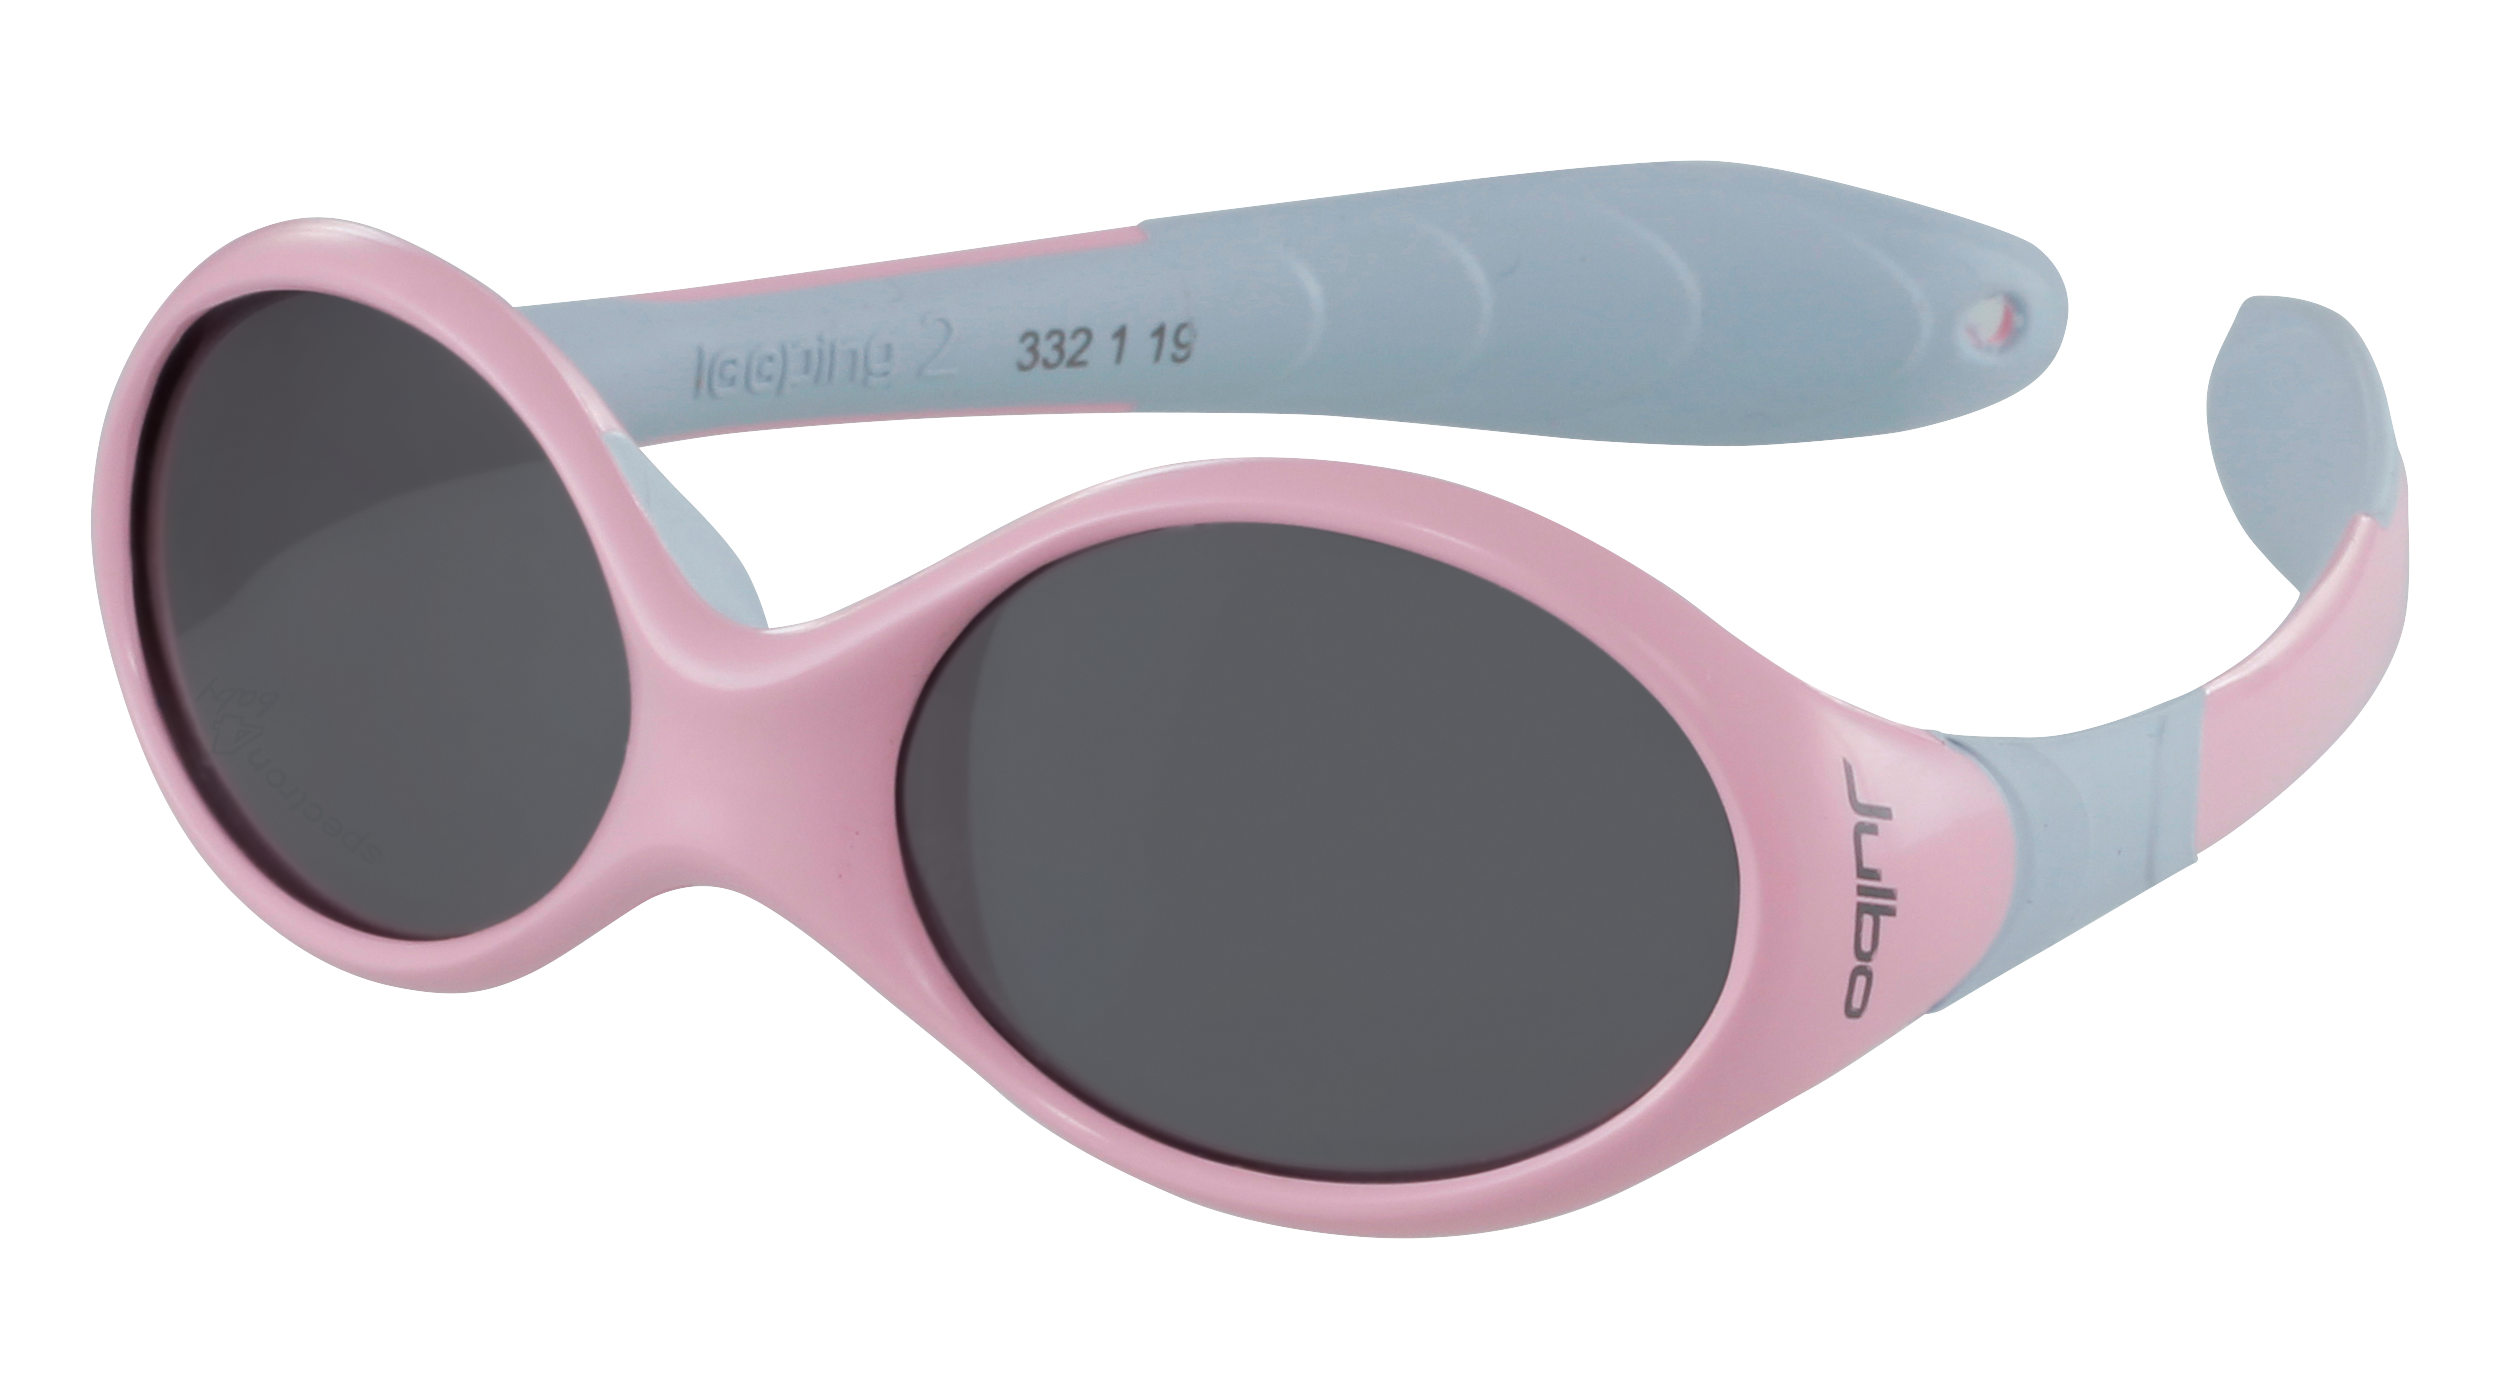 Julbo LOOP2-S-332-42-15000-0